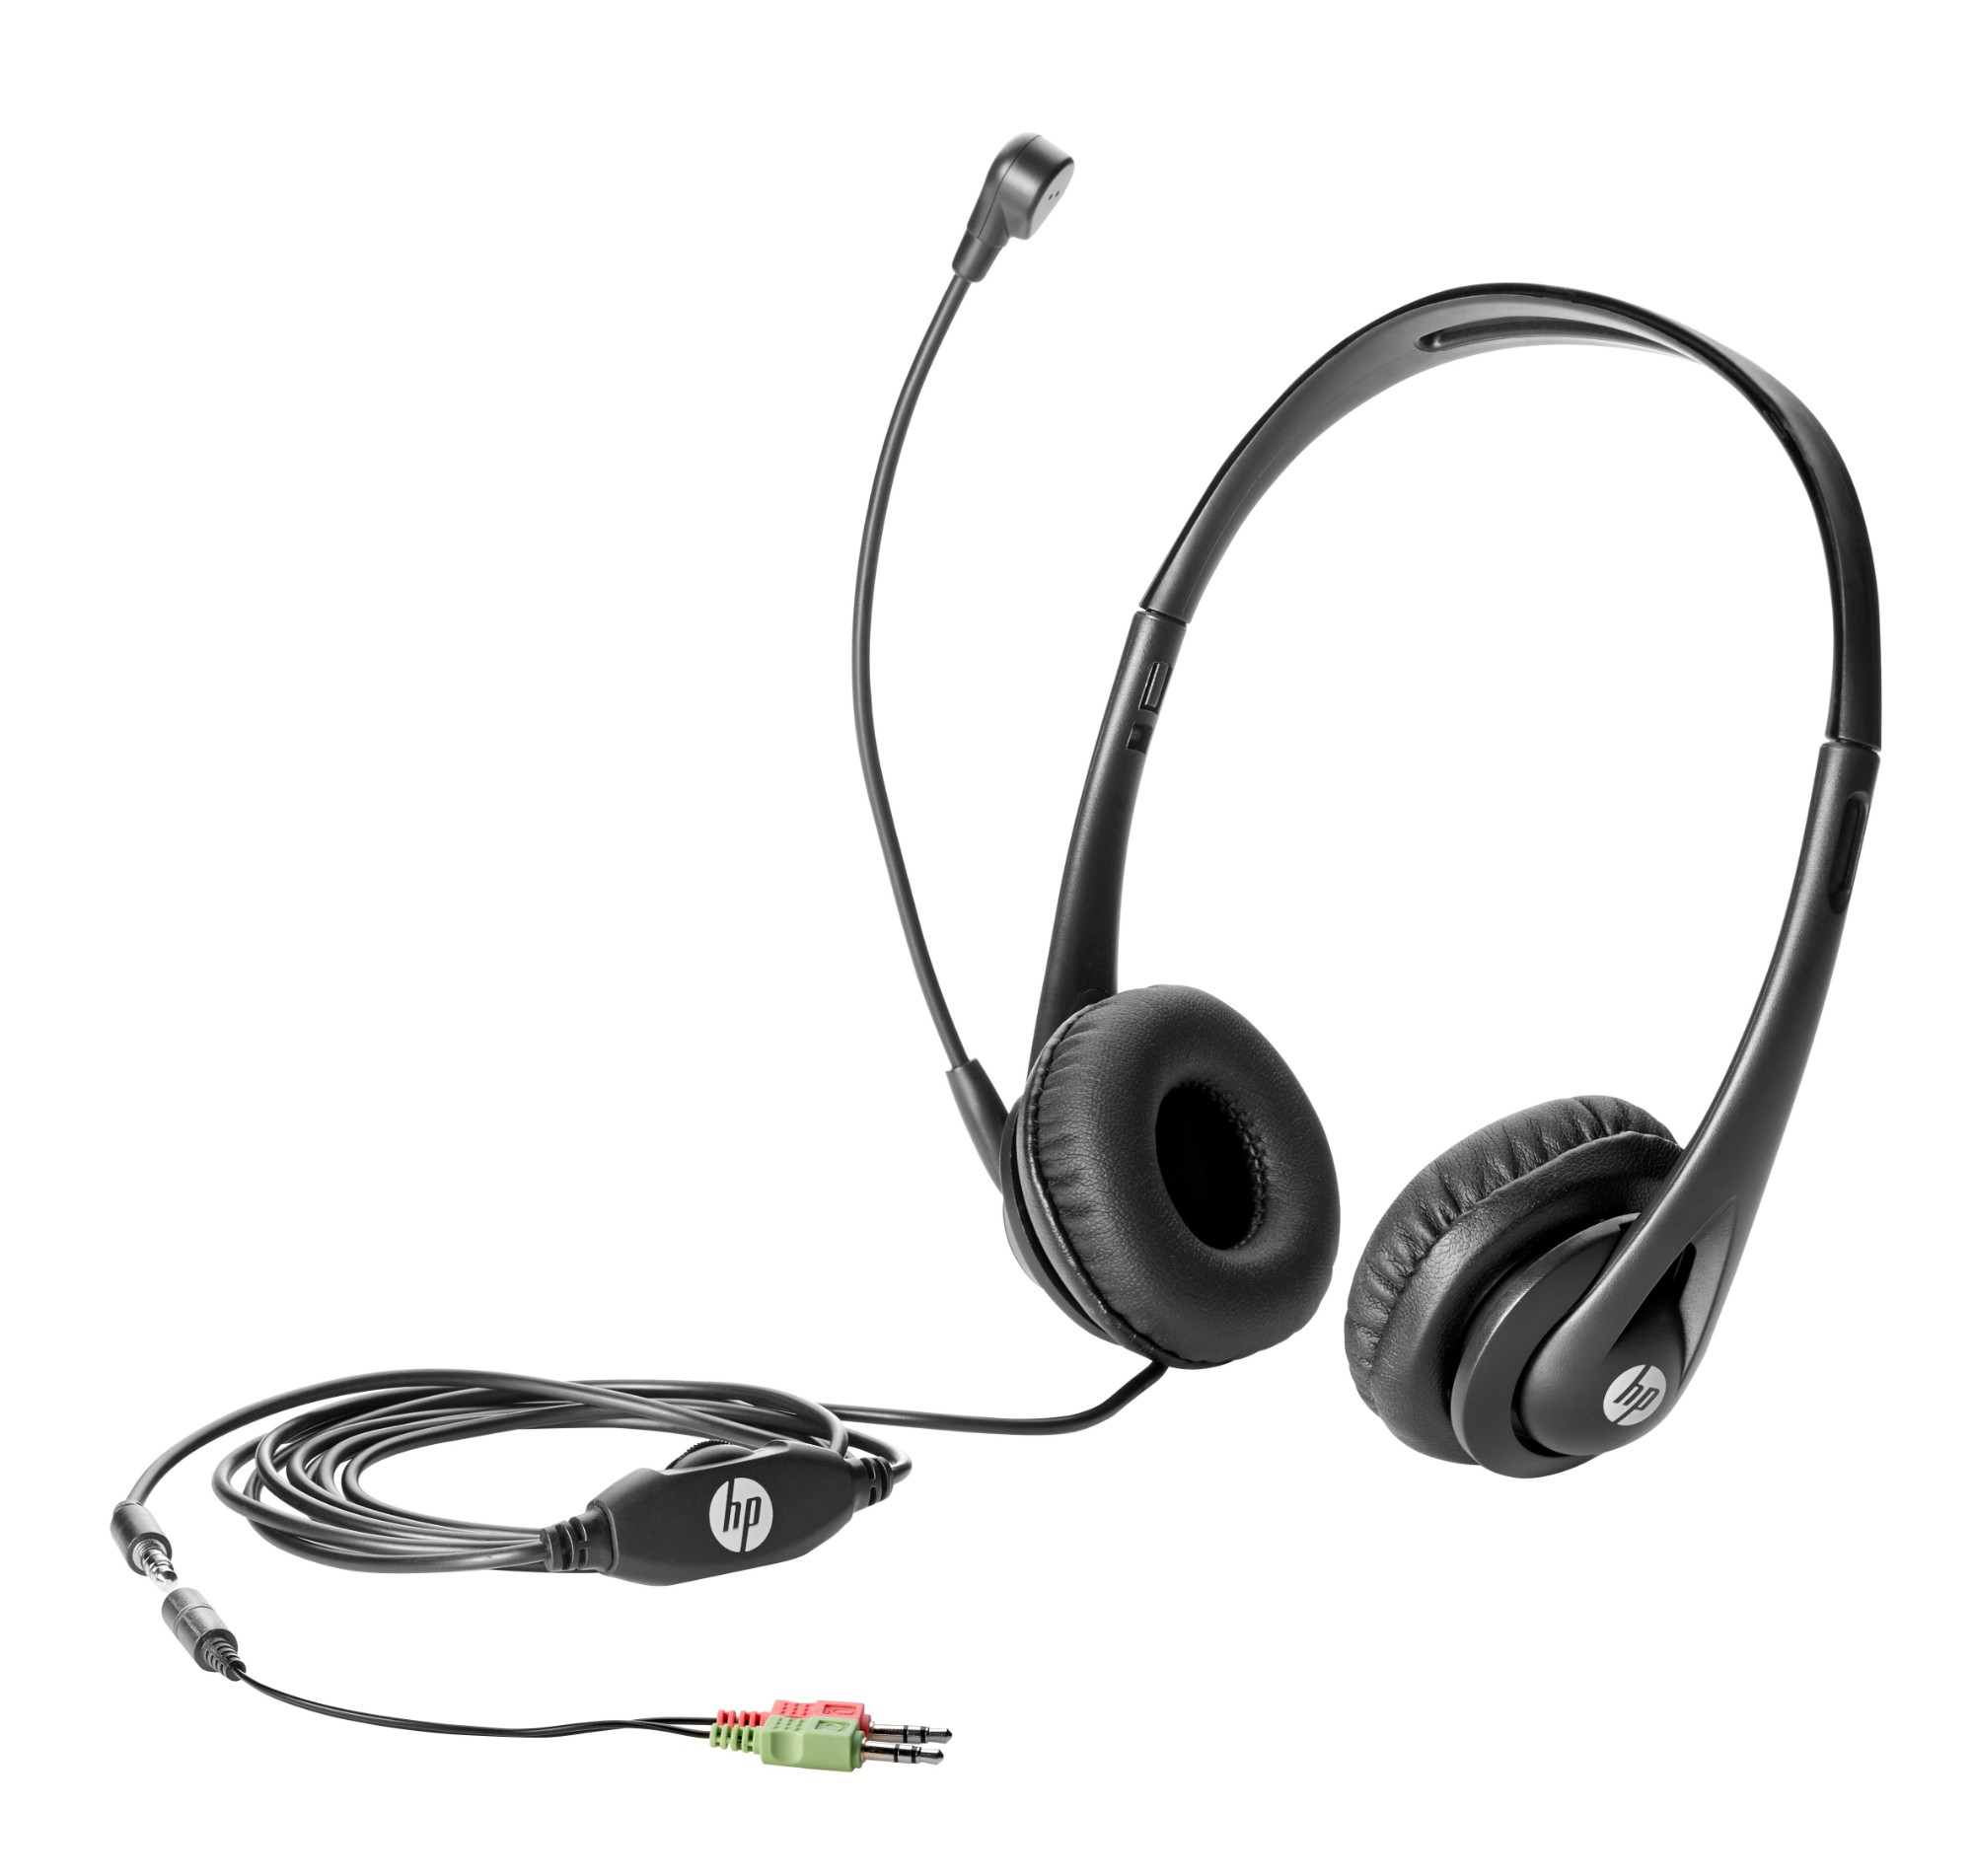 HP Business Headset v2